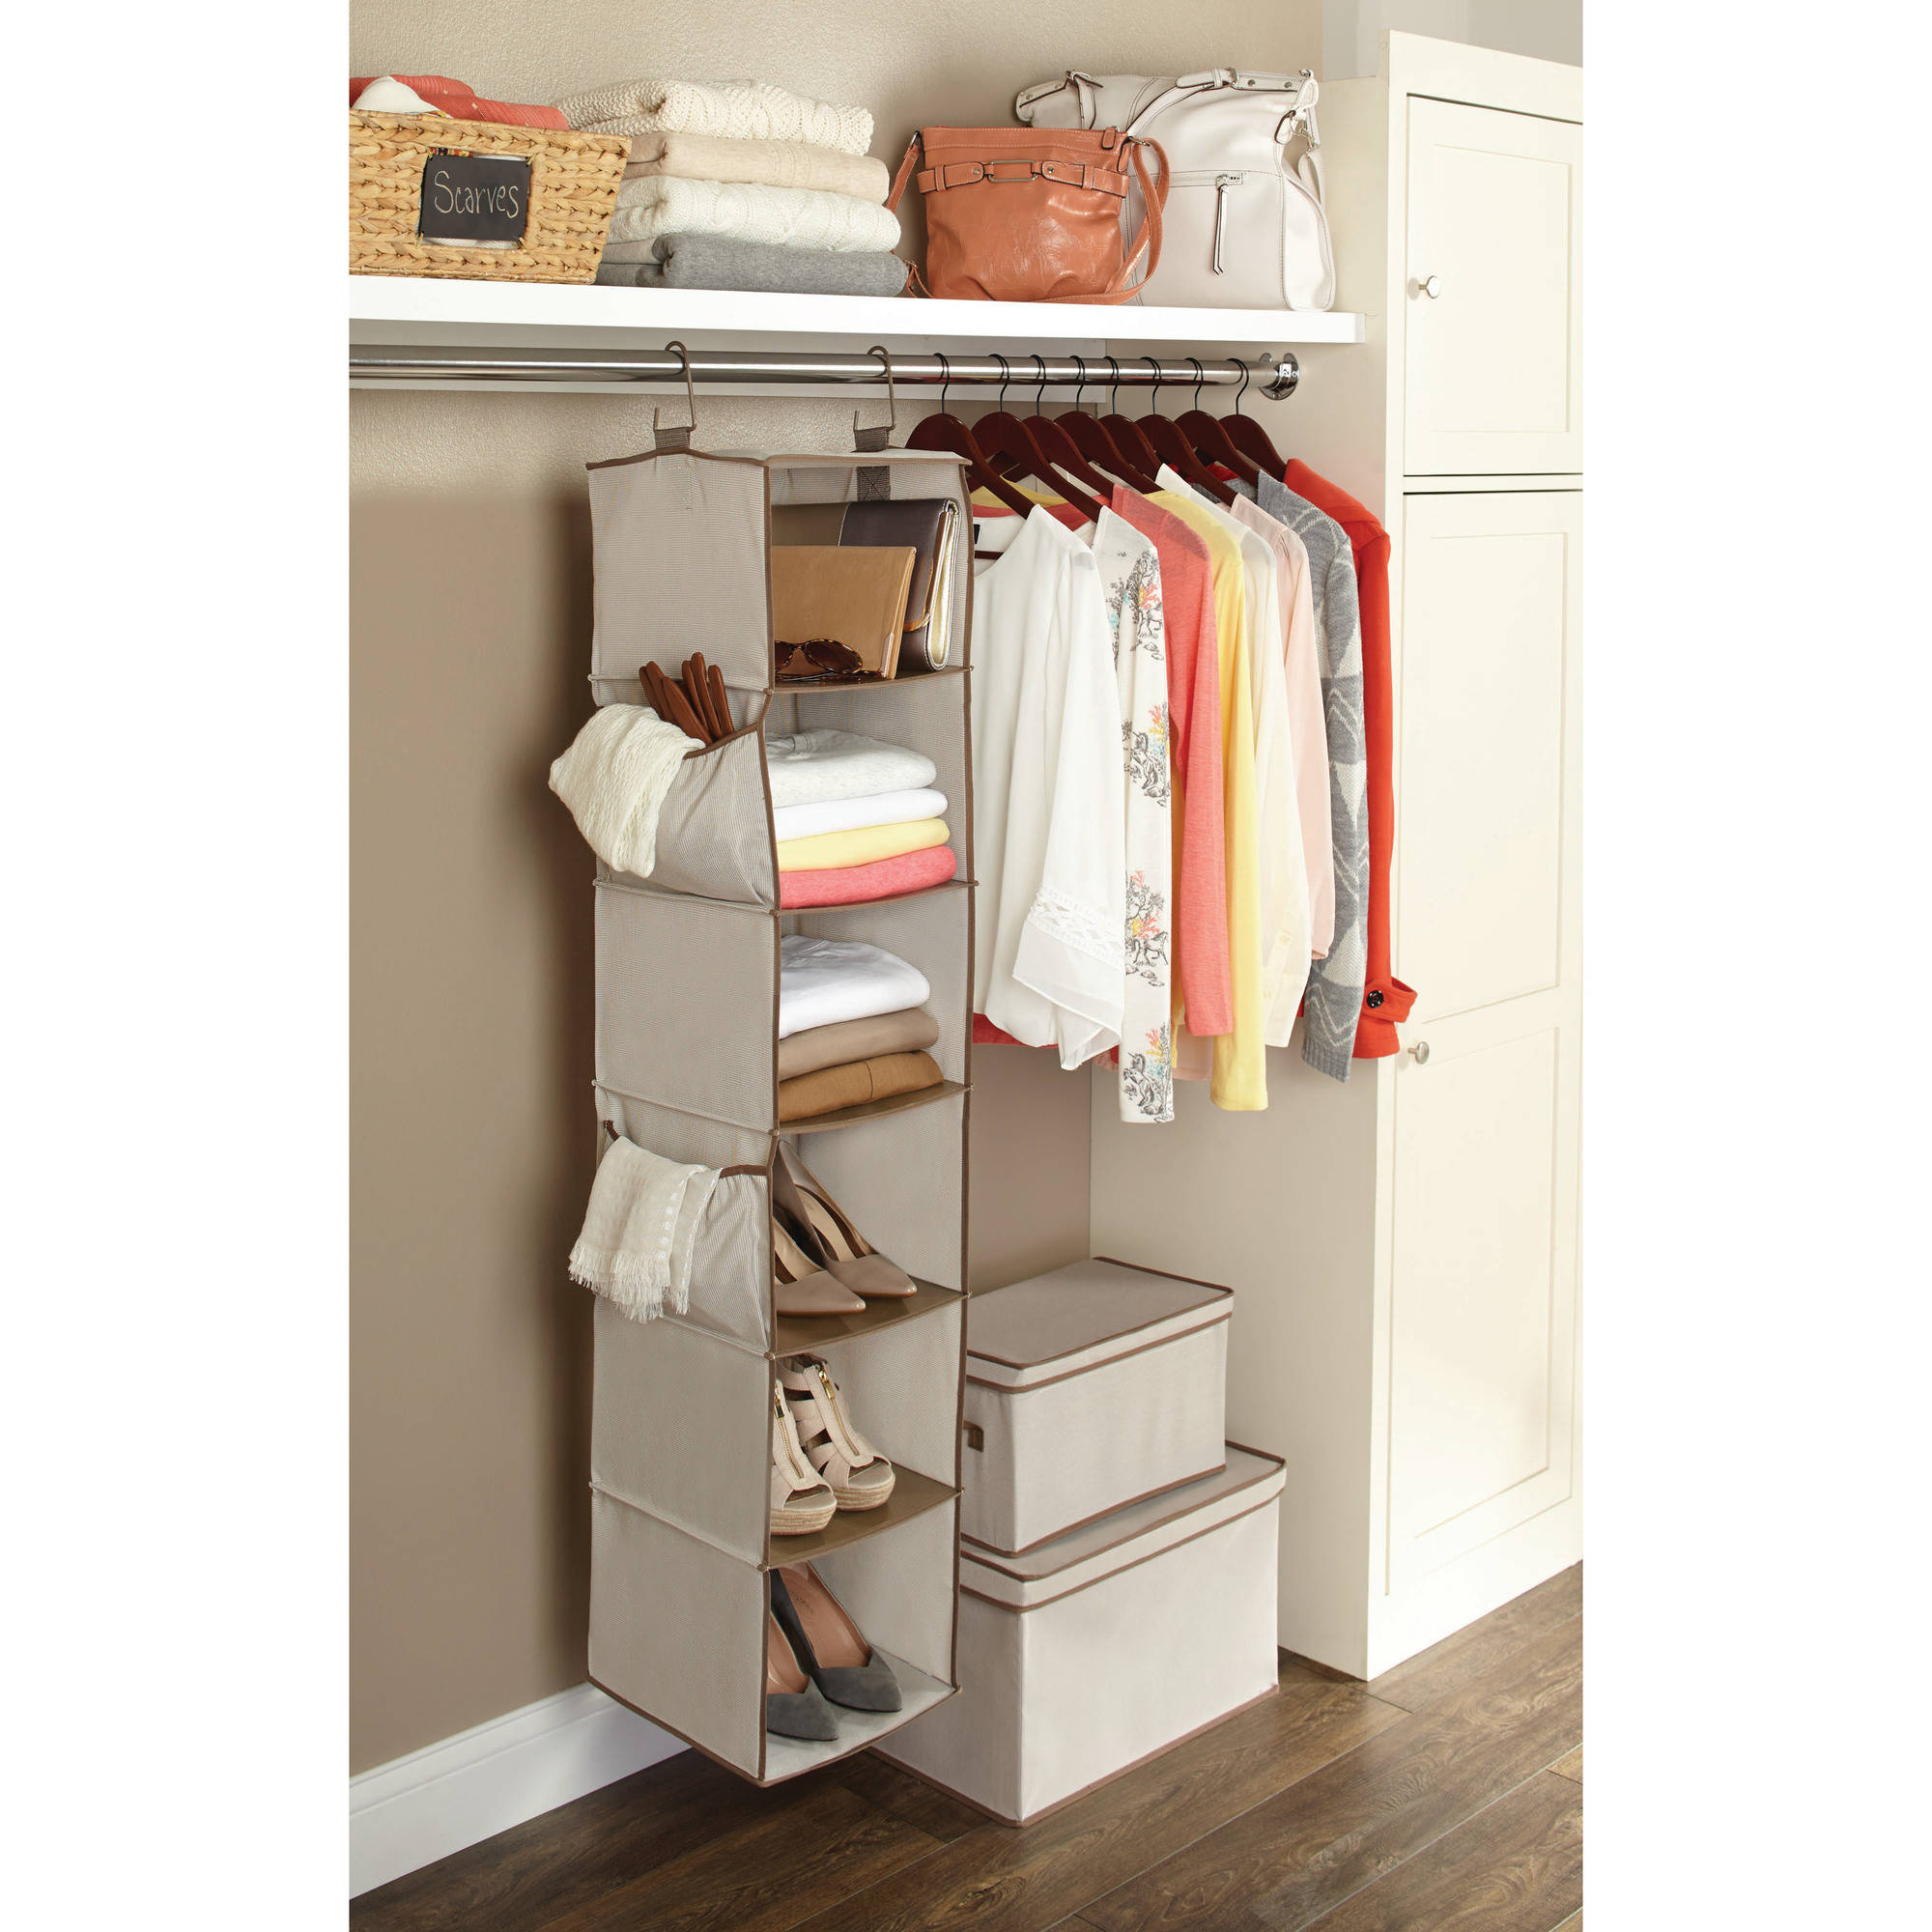 Delicieux Better Homes And Gardens 6 Shelf Hanging Closet Organizer   Walmart.com